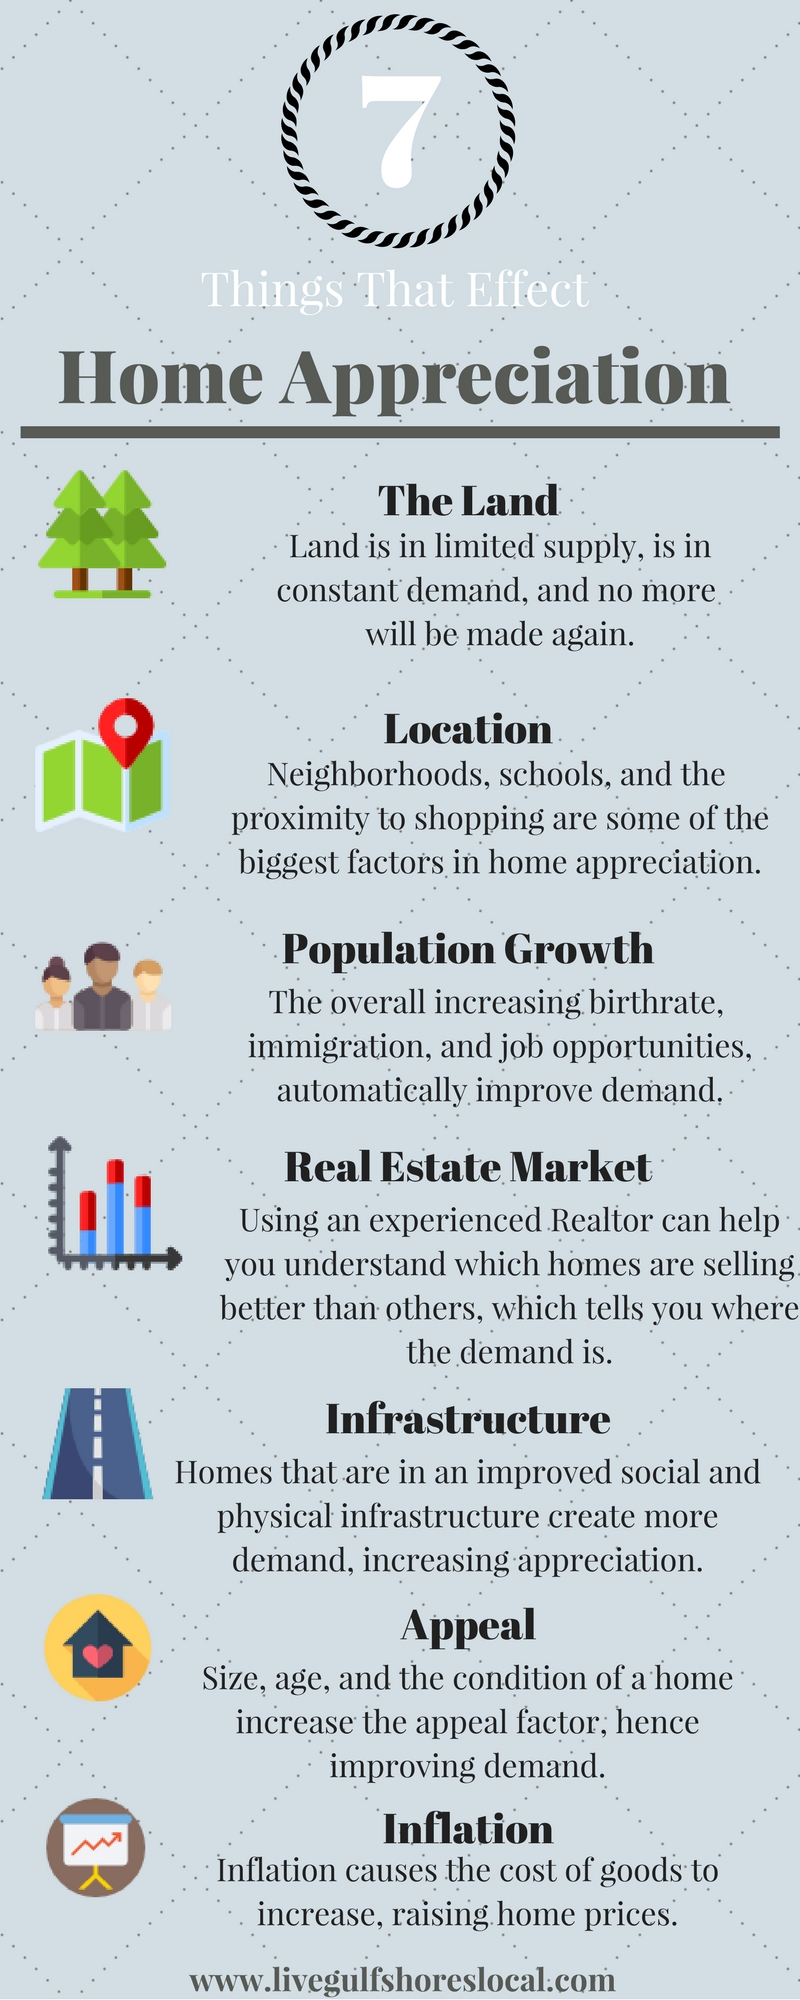 Home Appreciation Infographic